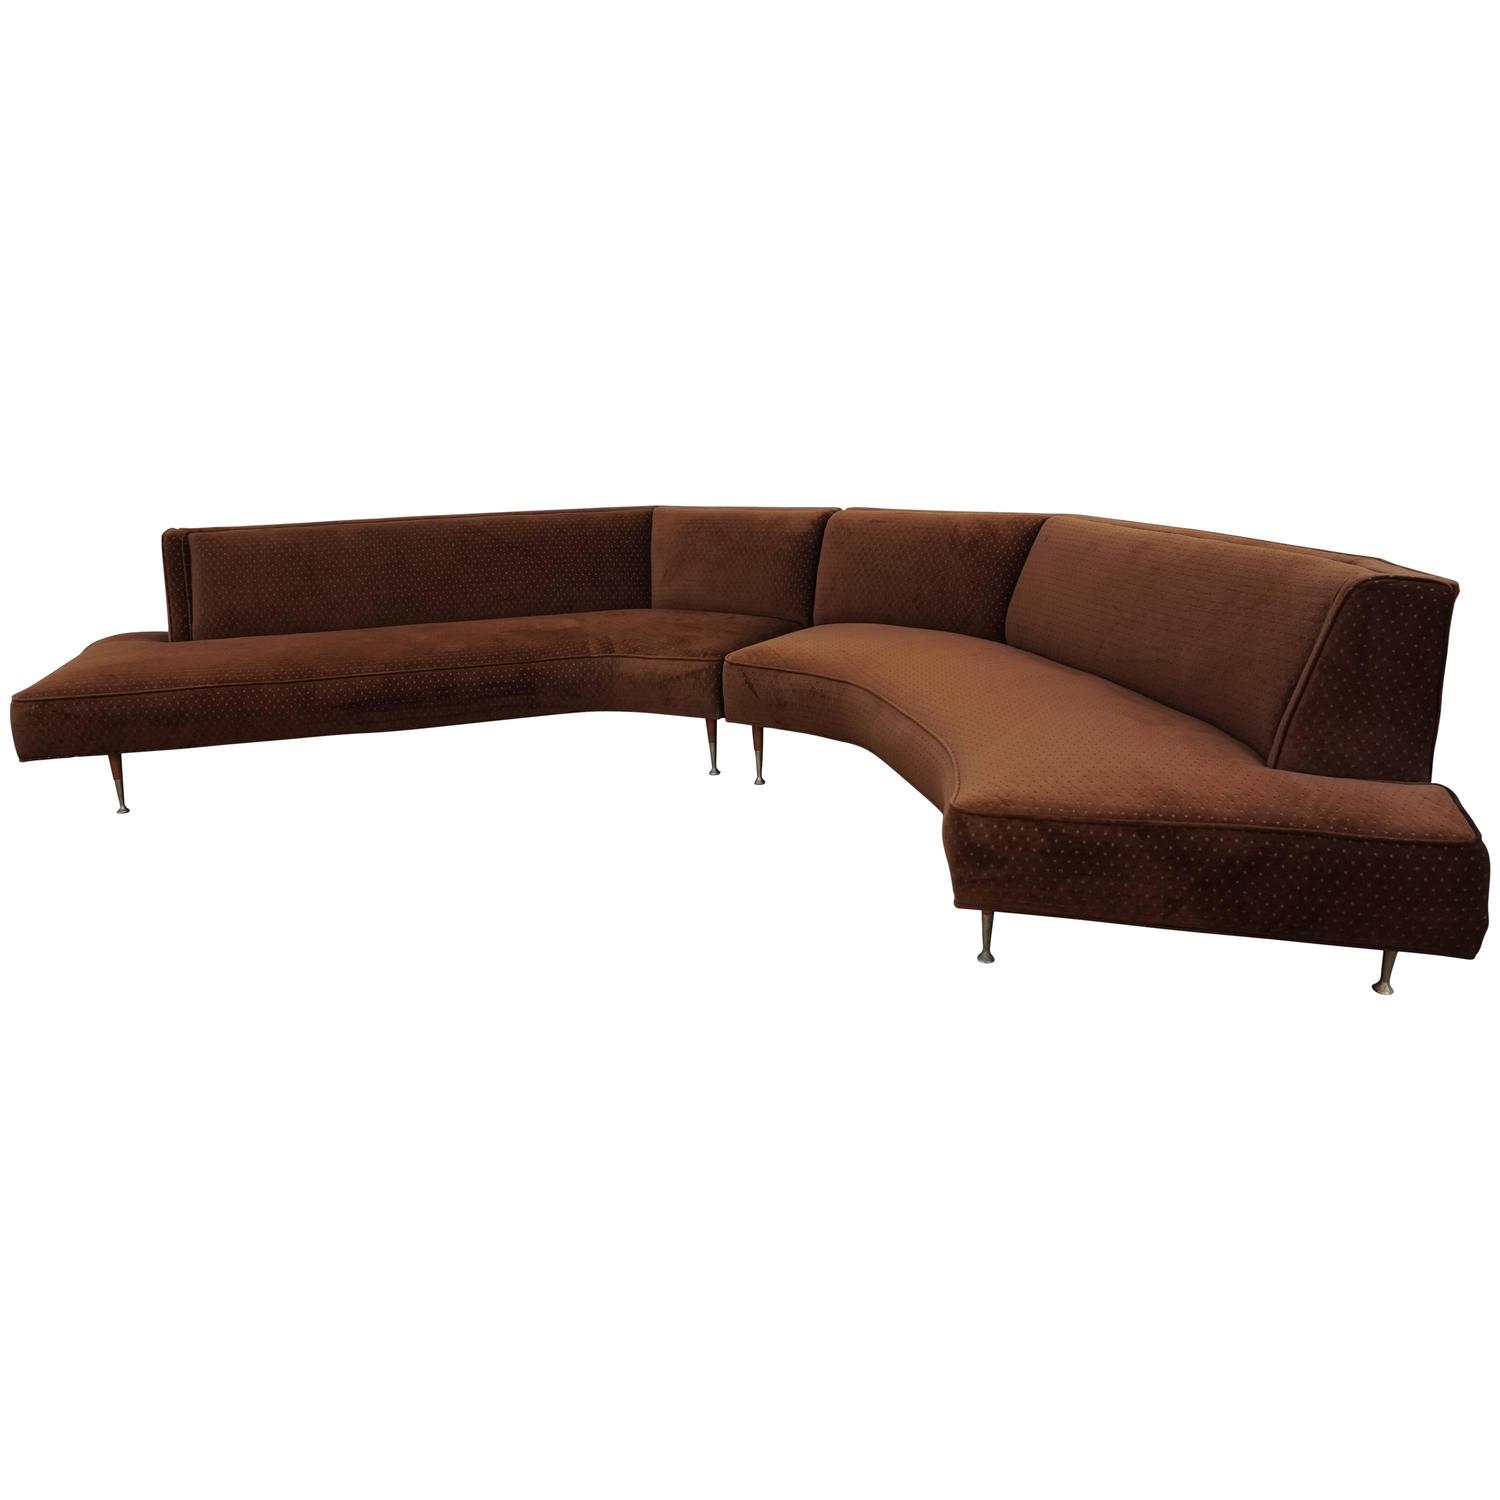 gorgeous harvey probber style two piece curved sofa With mid century modern curved sectional sofa